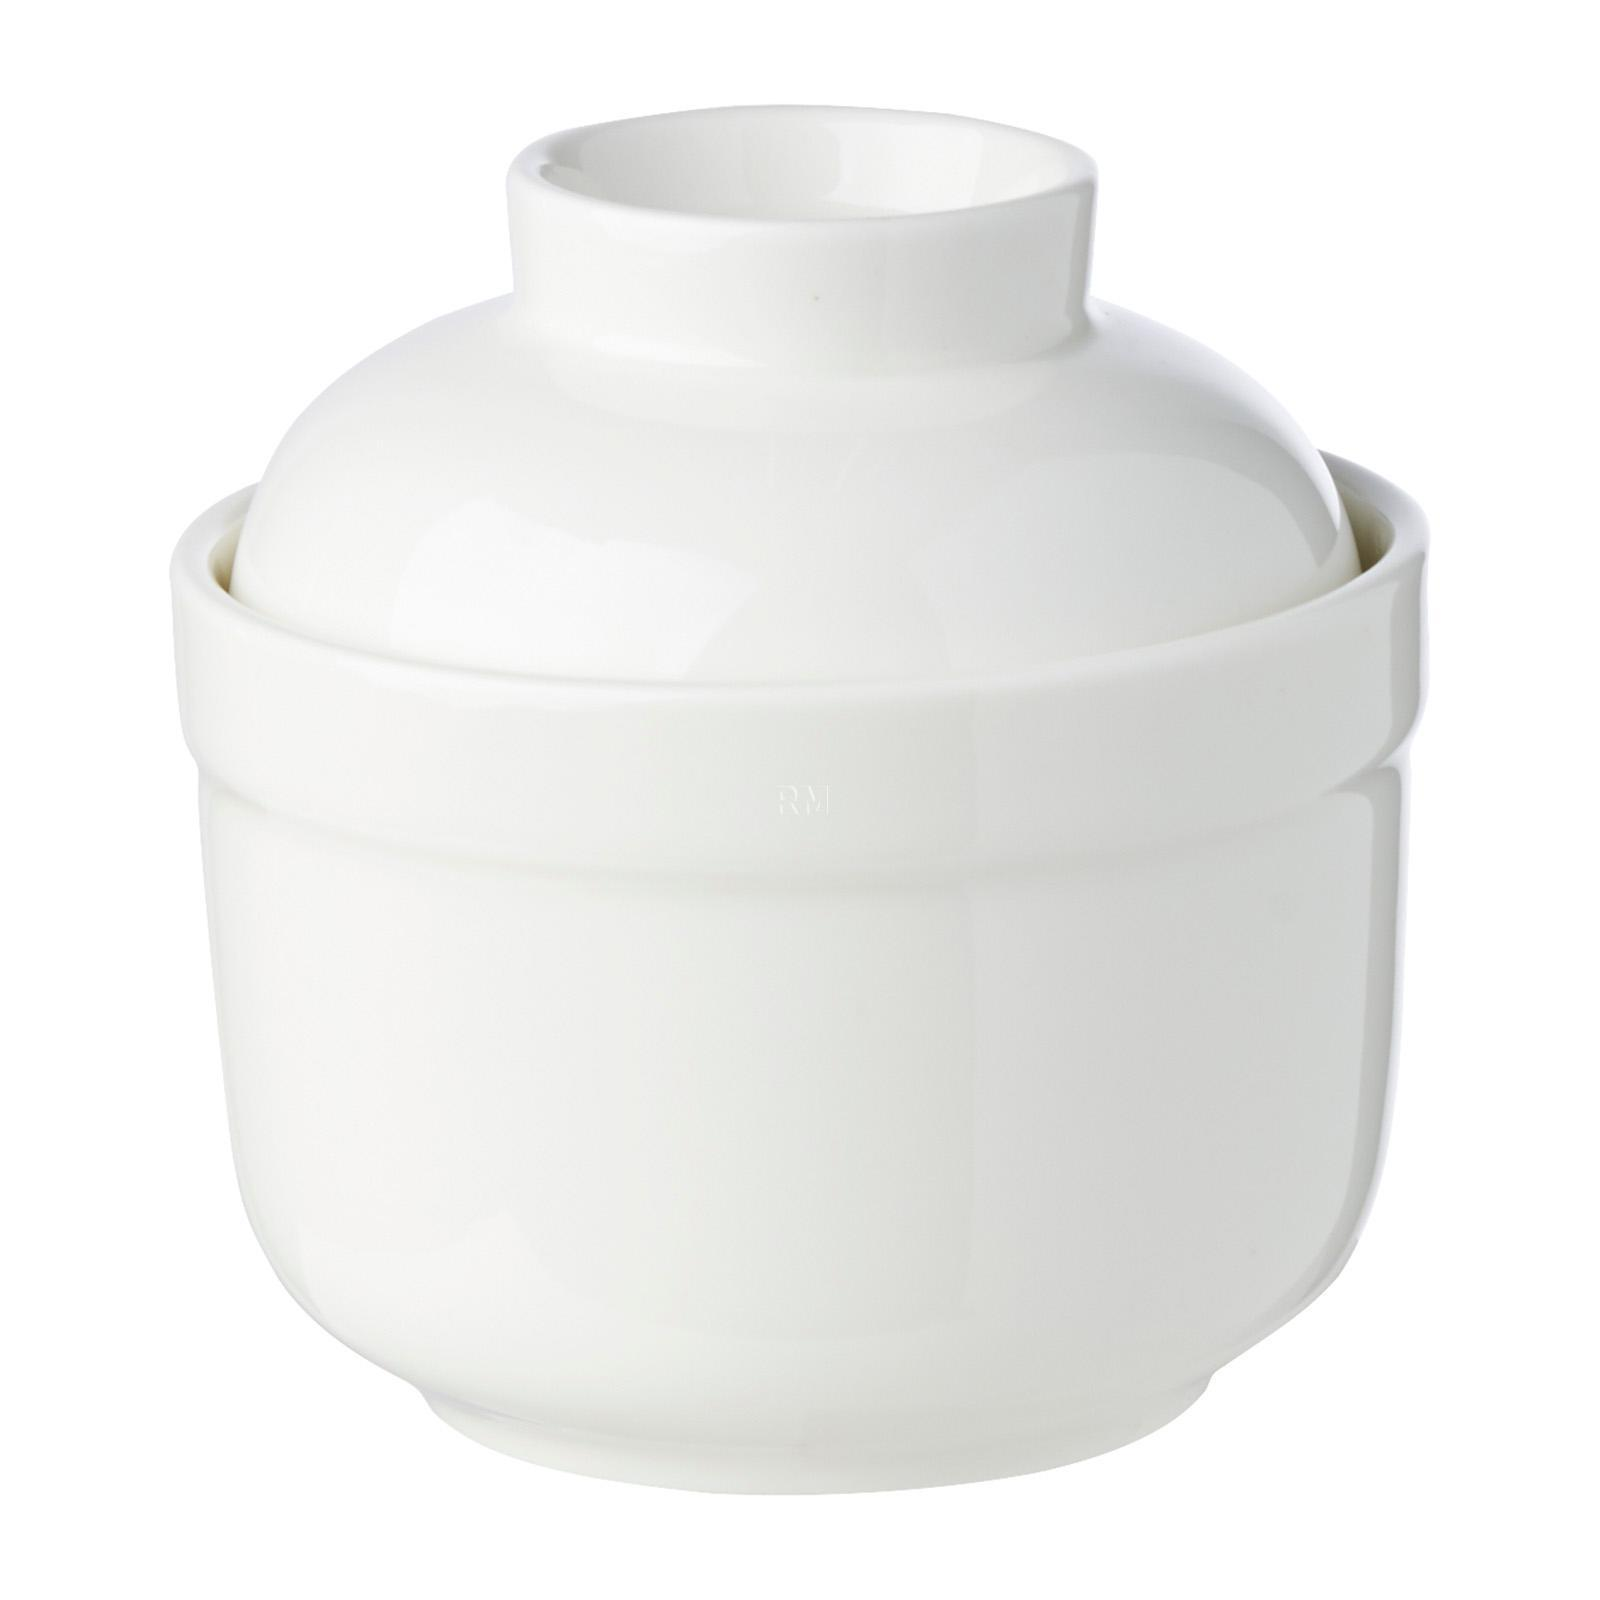 Wilmax England Porcelain Soup Cup With Lid